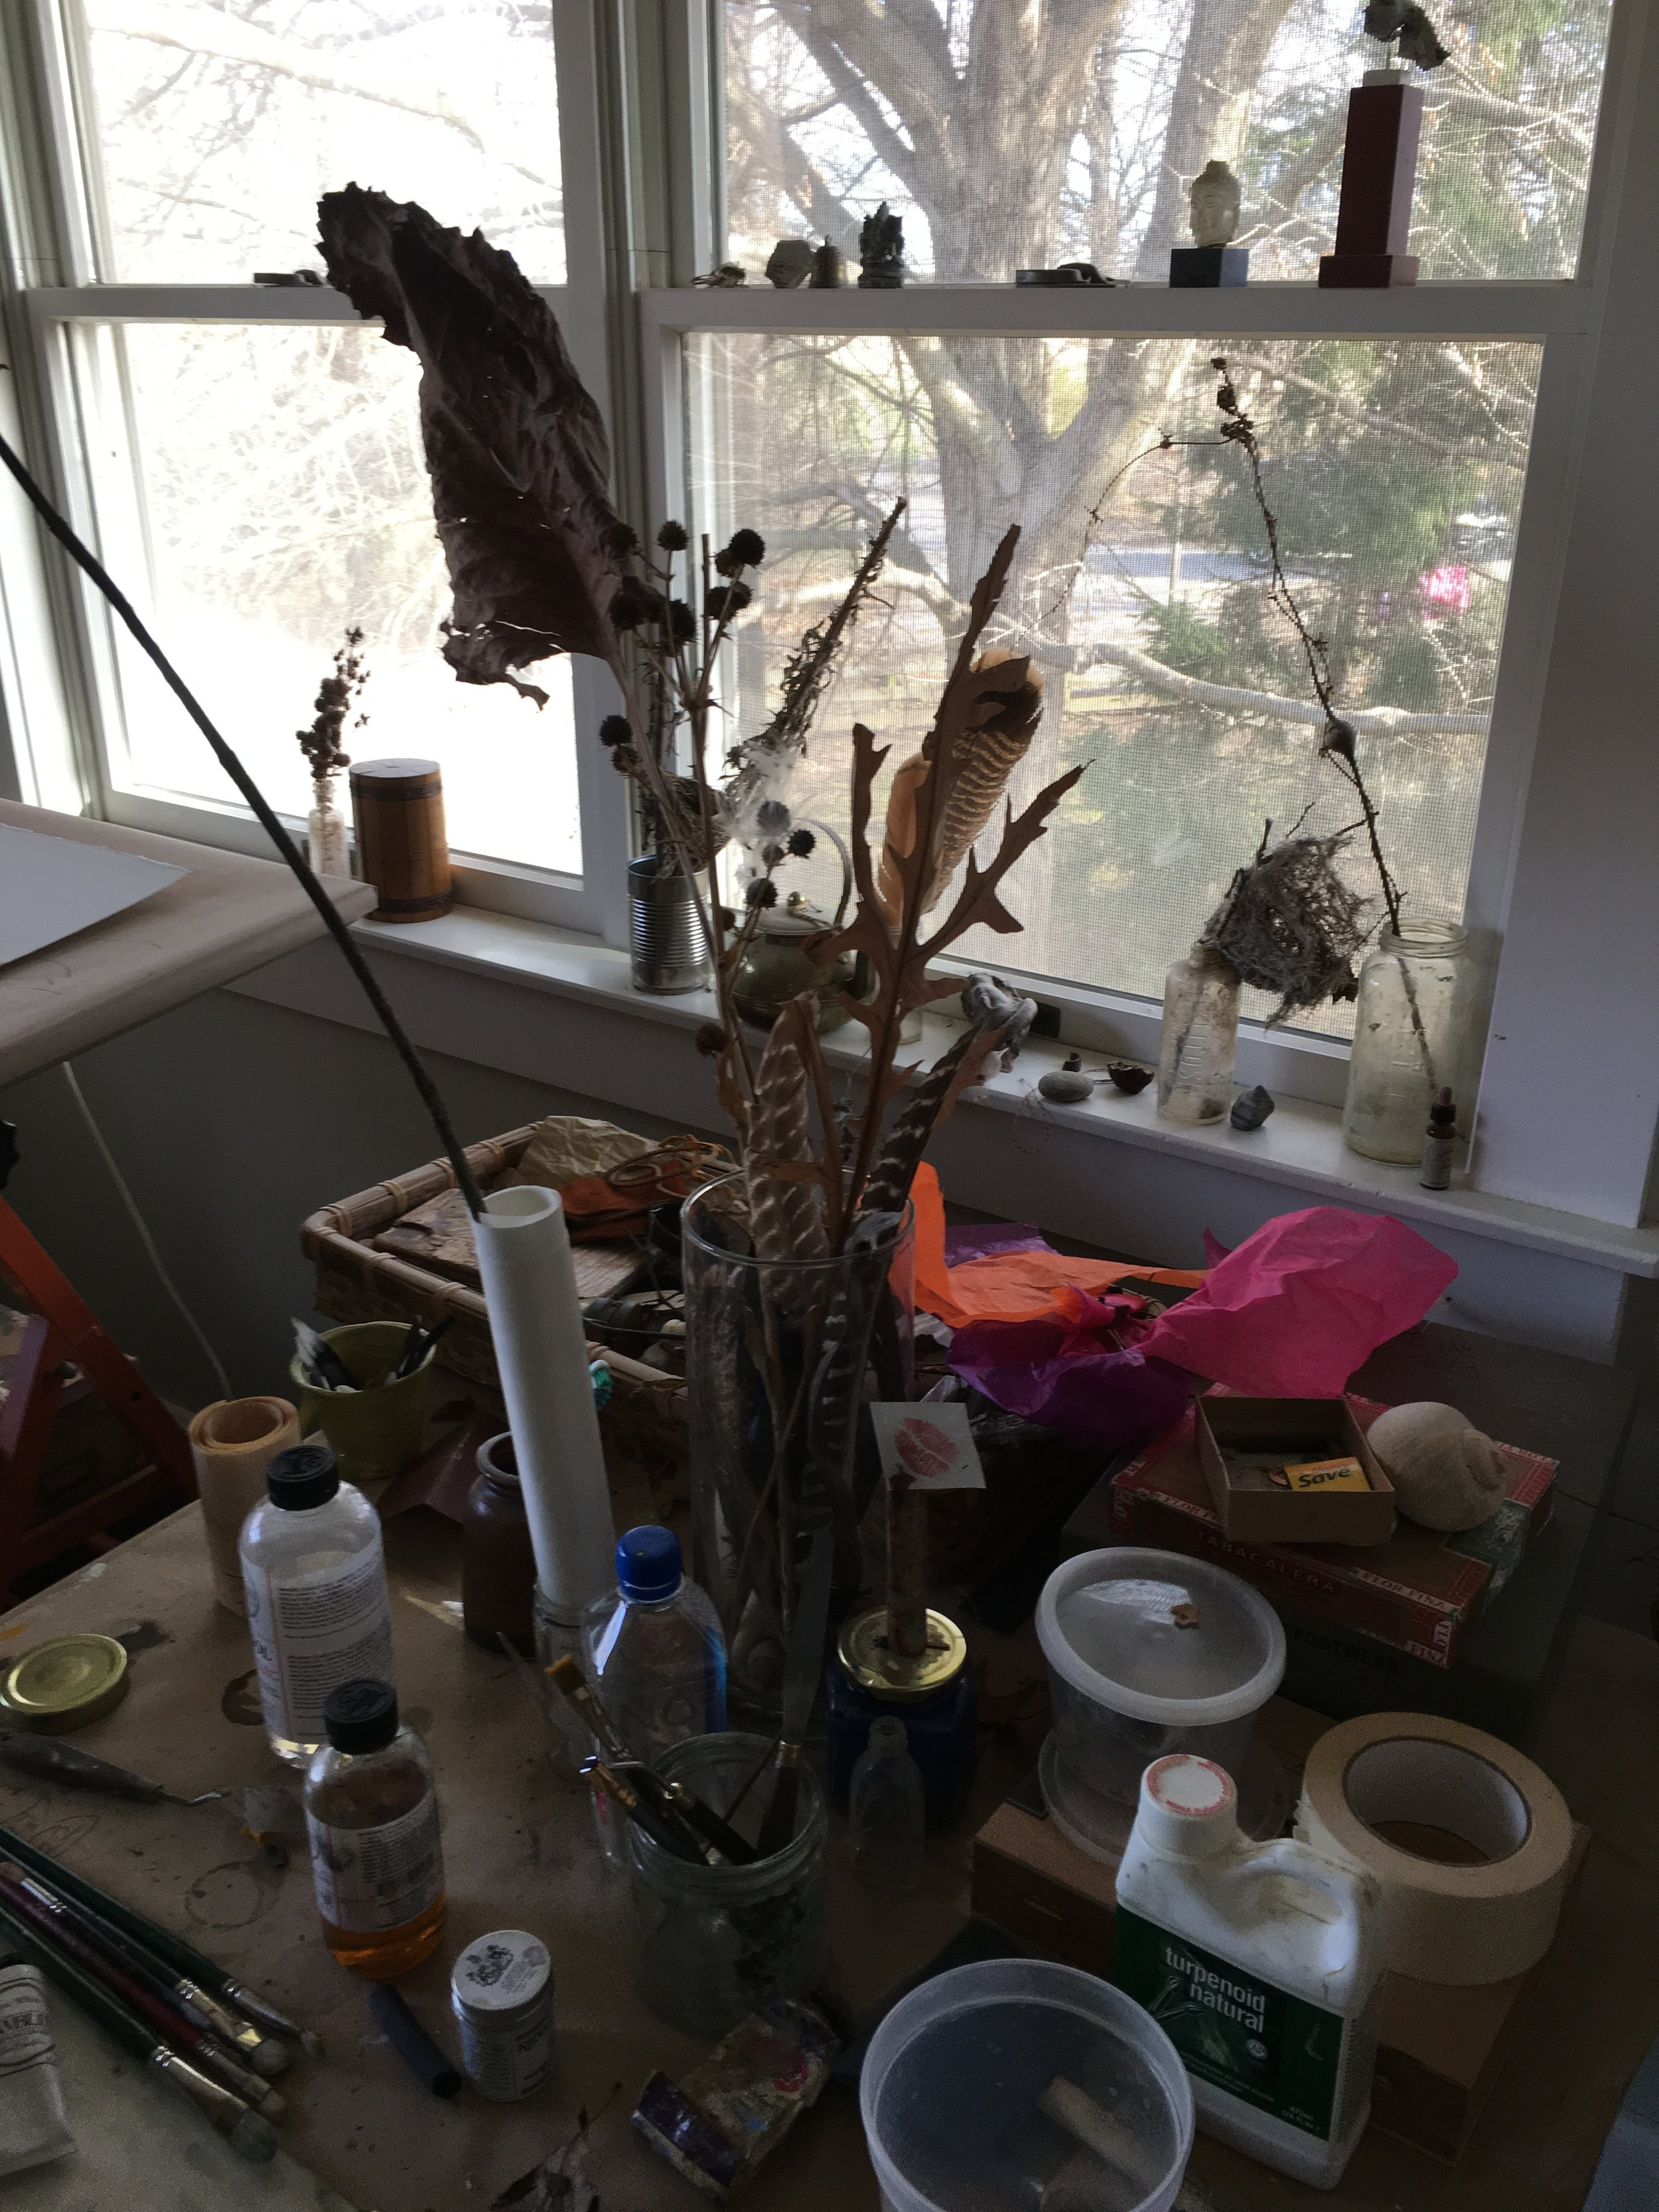 A collection of natural artifacts and artist supplies in Thomas Joseph's studio in New Brunswick, Canada.